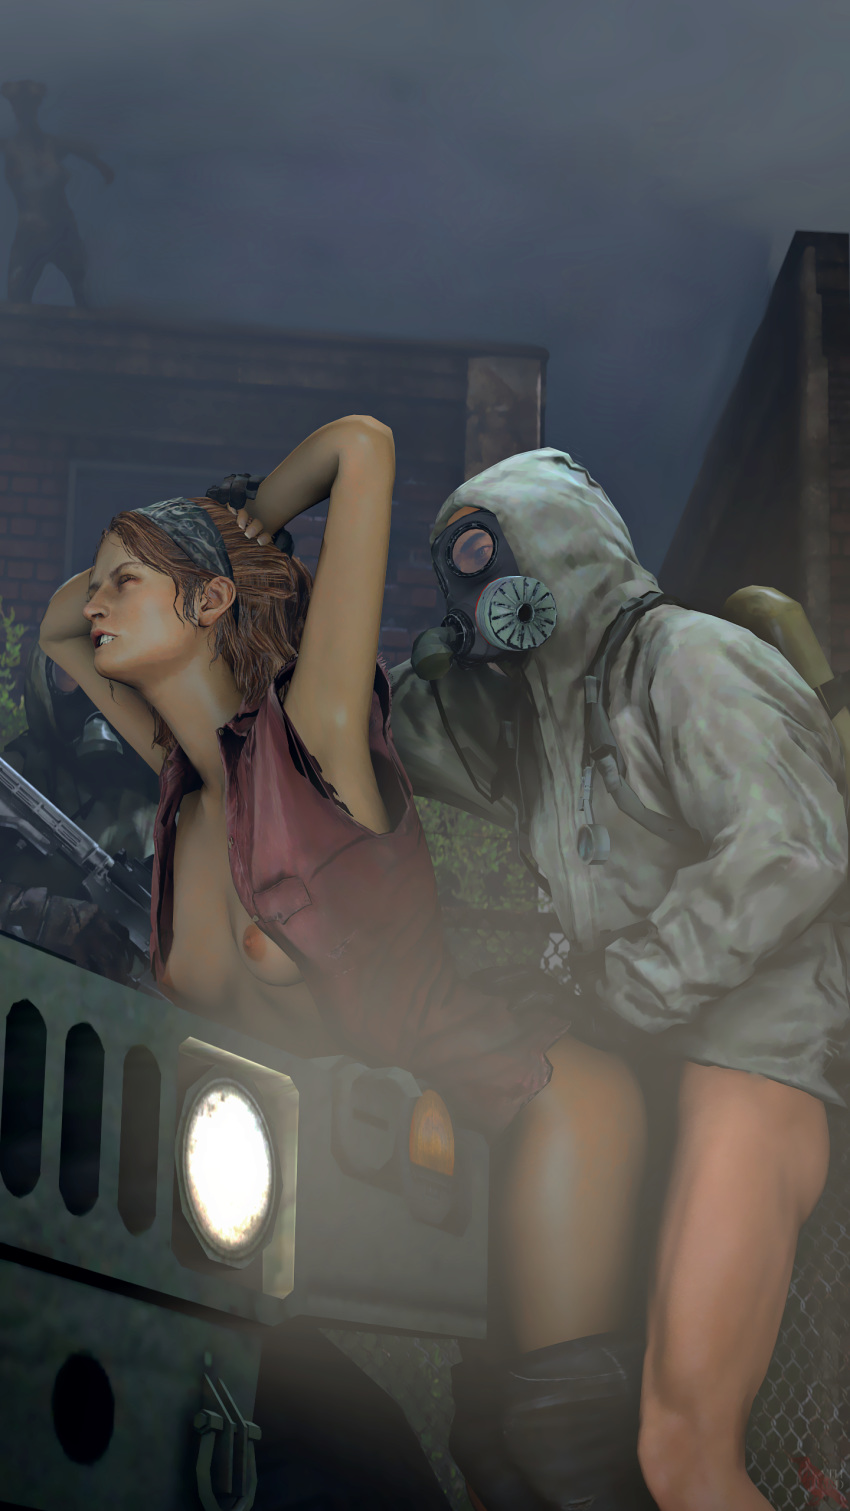 ellie sex last of us List of traps in anime